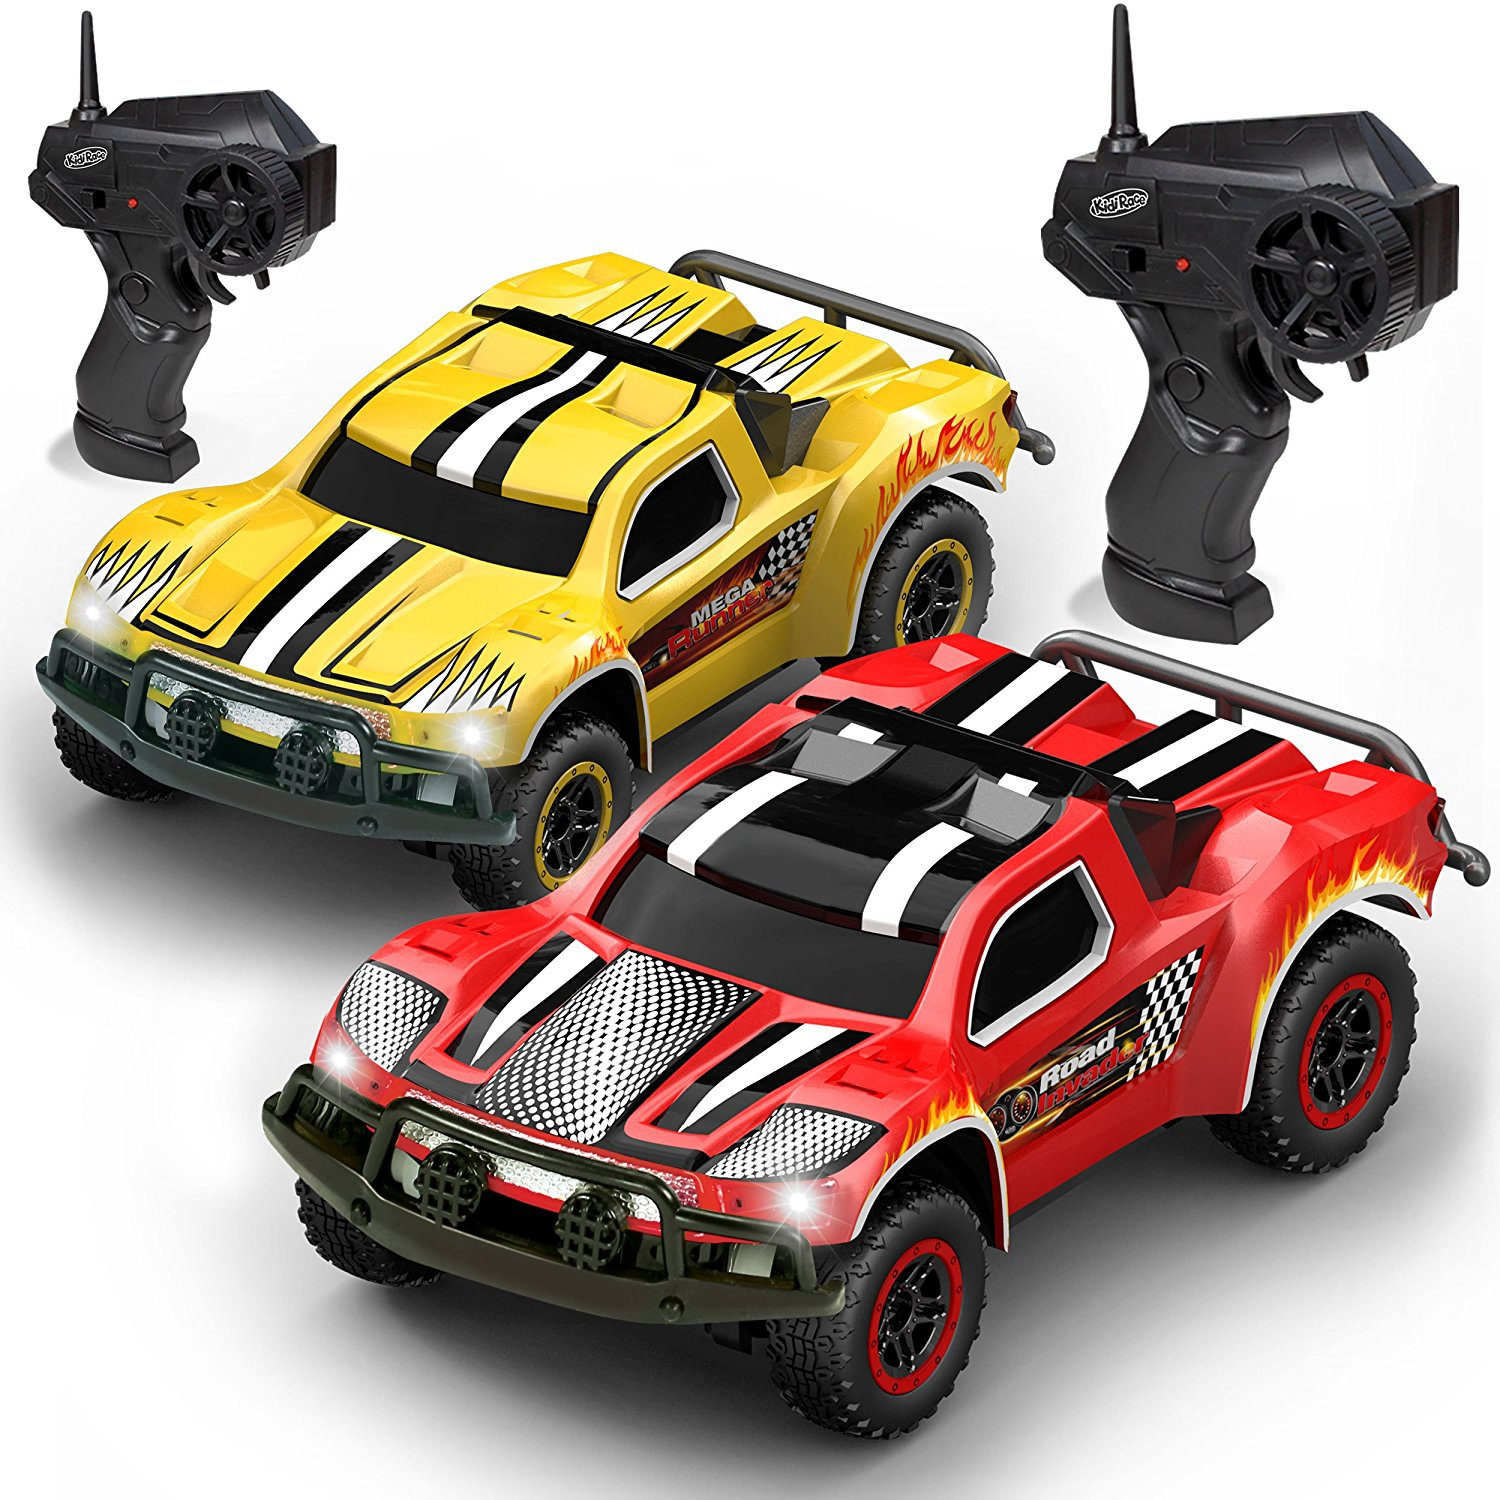 5336e08814b6 Remote Control Car -2 Mini RC Racing Coupe Cars - With Rechargeable  Batteries and Wall Chargers